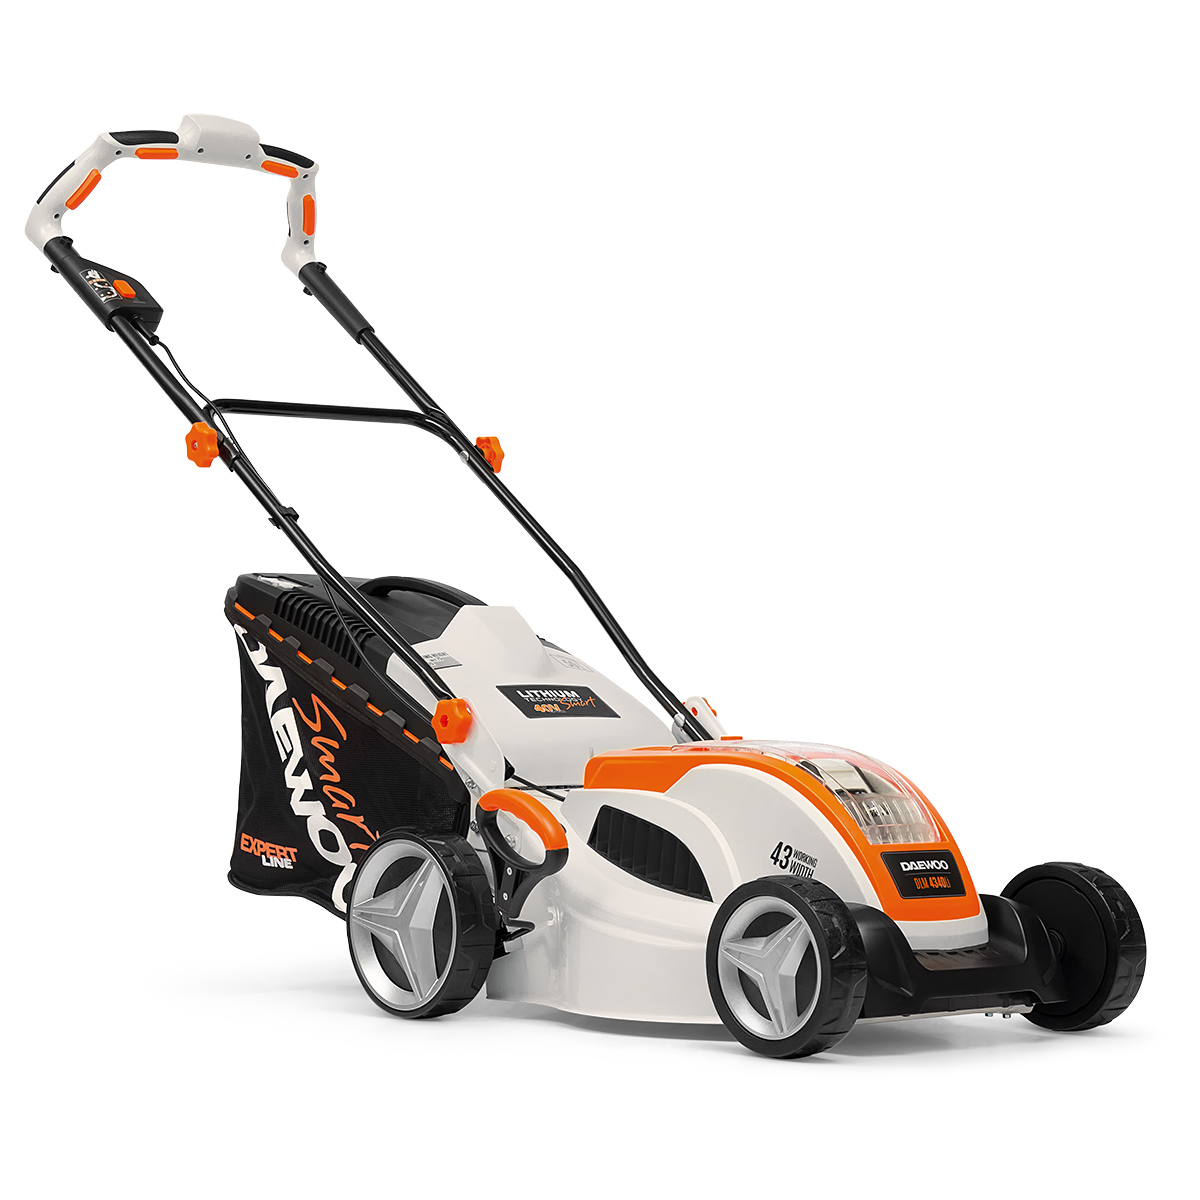 Battery Lawn Mower Daewoo DLM 4340Li